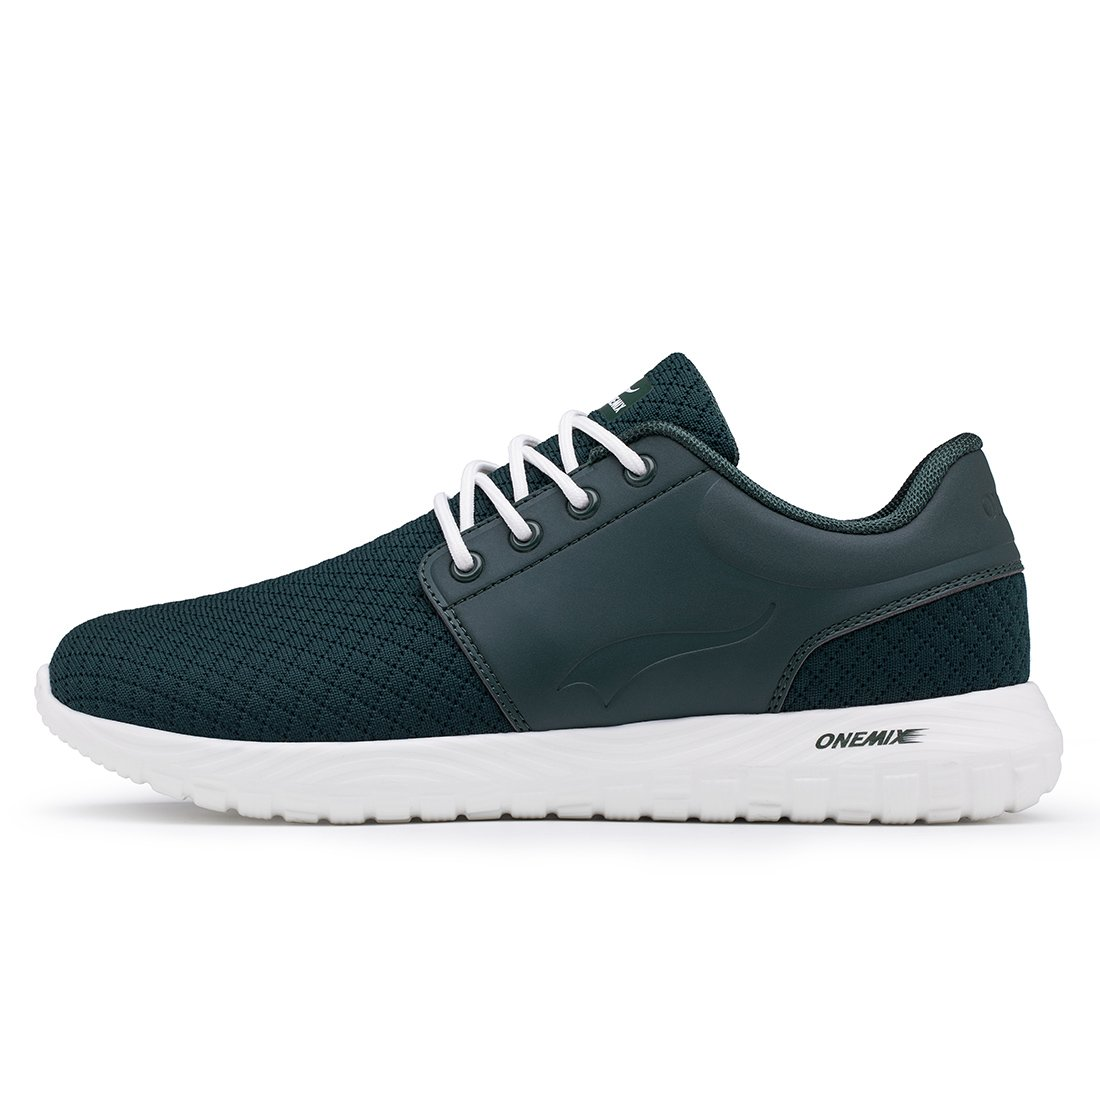 ONEMIX Lightweight Running Shoes - Men's Breathable Casual Sports Sneakers Mesh Soft Sole Athletic Shoes B07DP1DCSR 8 D(M) US 10.23 inch=EUR41 Dark Green